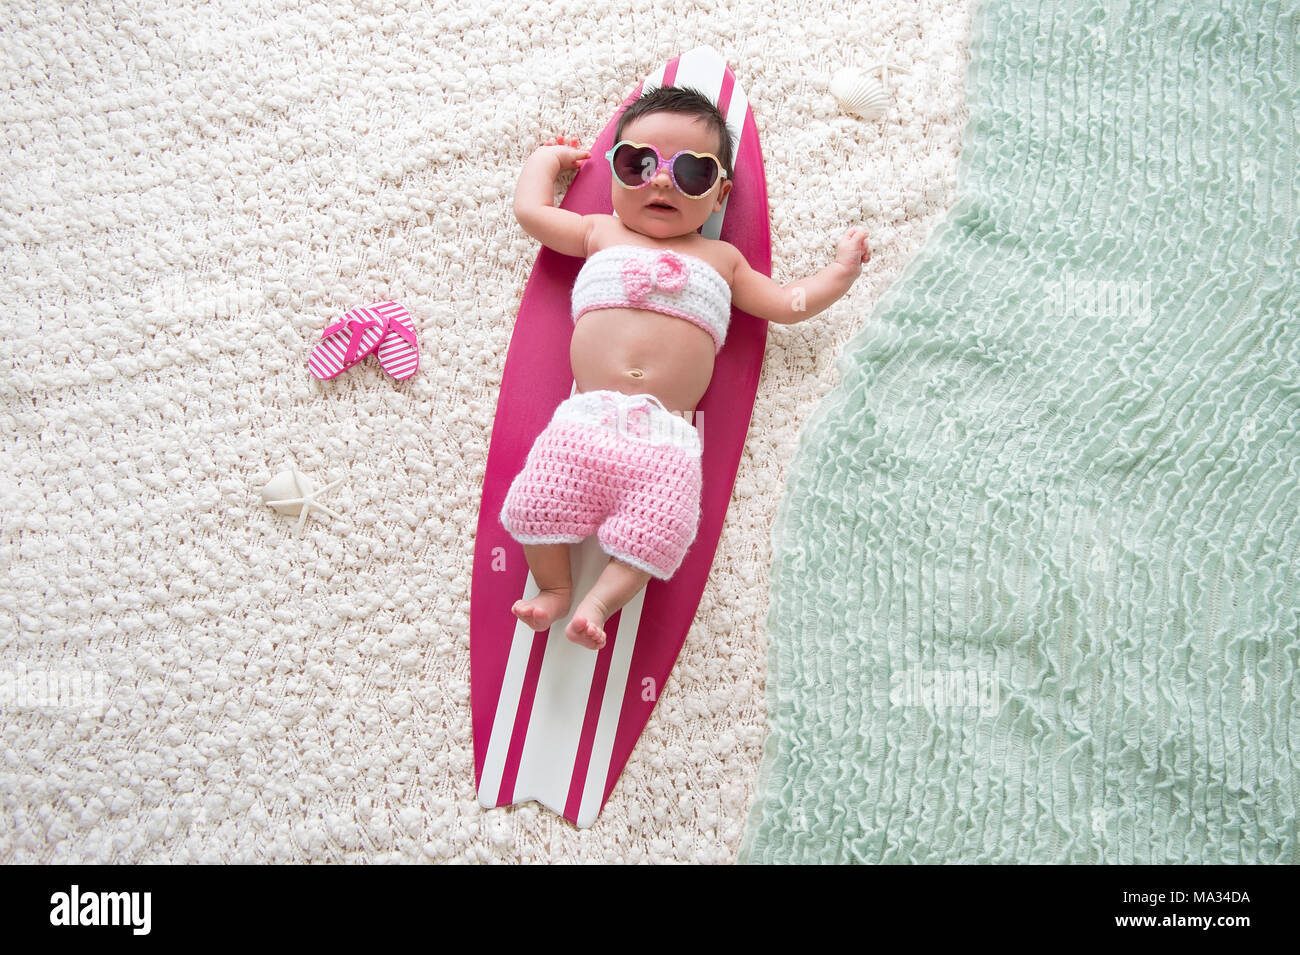 One month old baby girl lying on a tiny, pink and white surfboard. She is wearing sunglasses and a pink bathing suit. - Stock Image